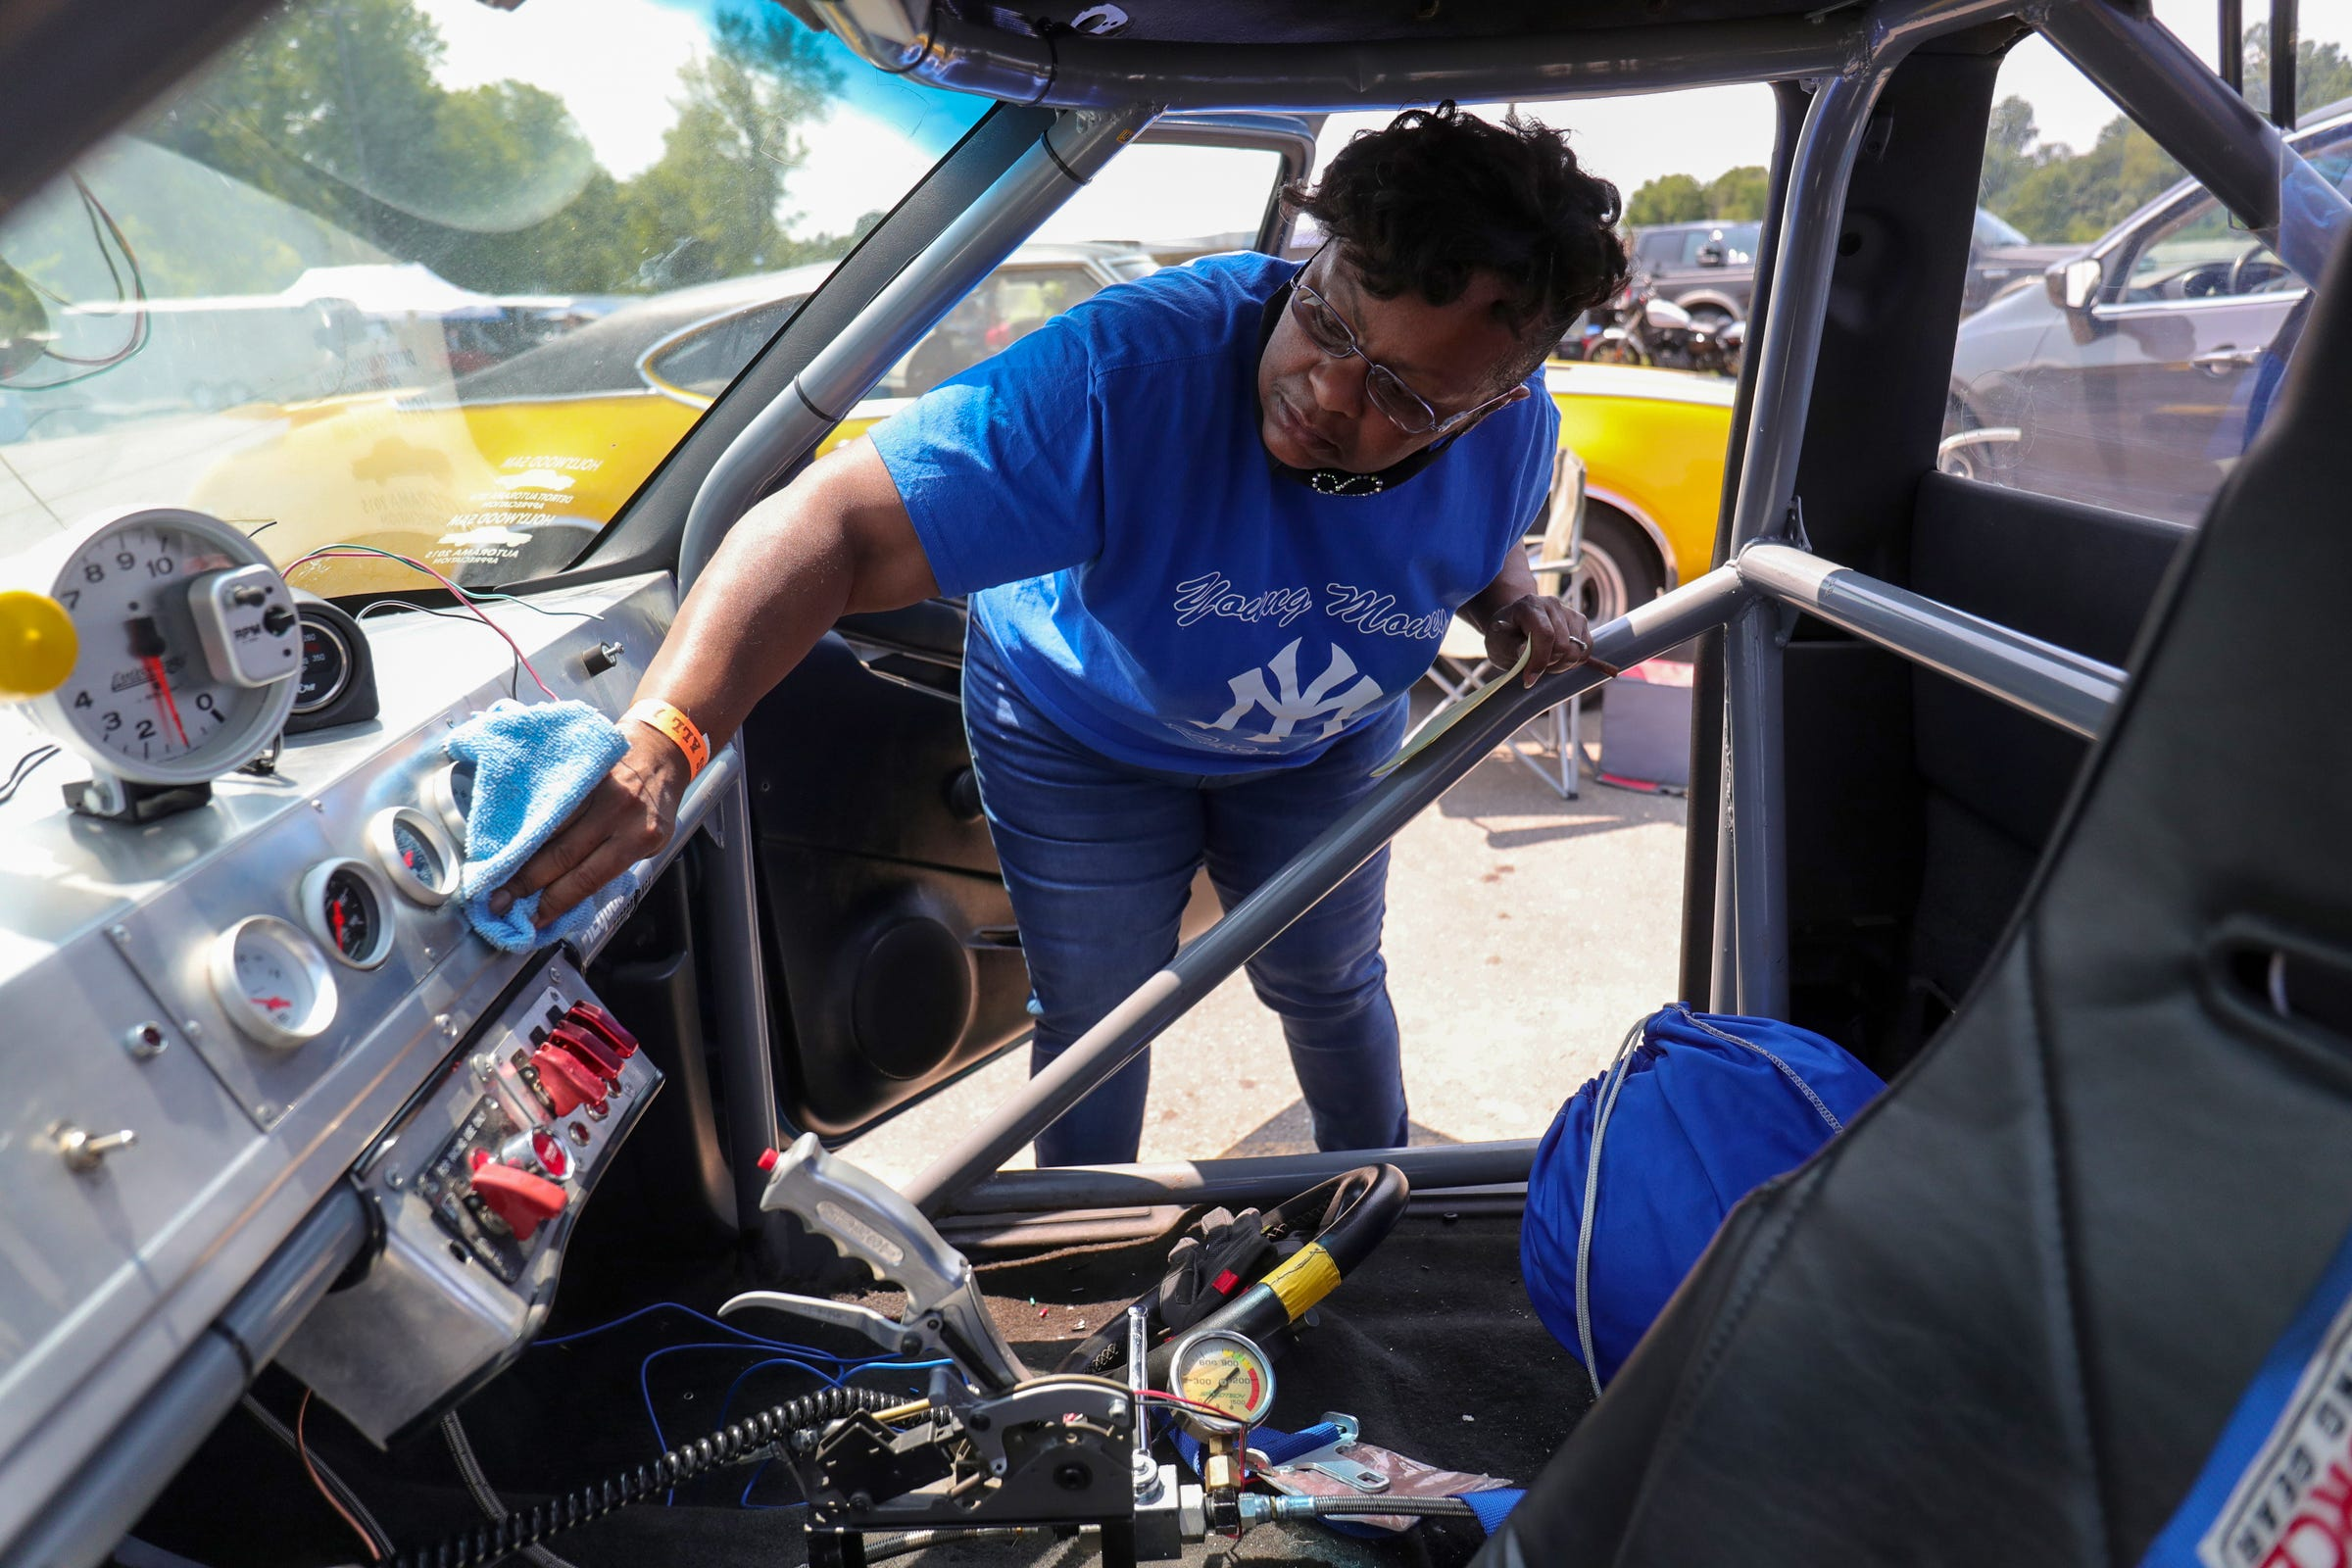 """Gail Fox Wilson wipes down the interior of her son Joemari Fox's car """"Payroll"""" ahead of his race at Lapeer International Dragway on Saturday, July 17, 2021. Gail and other family members helped prepare Joemari's car in the pits."""